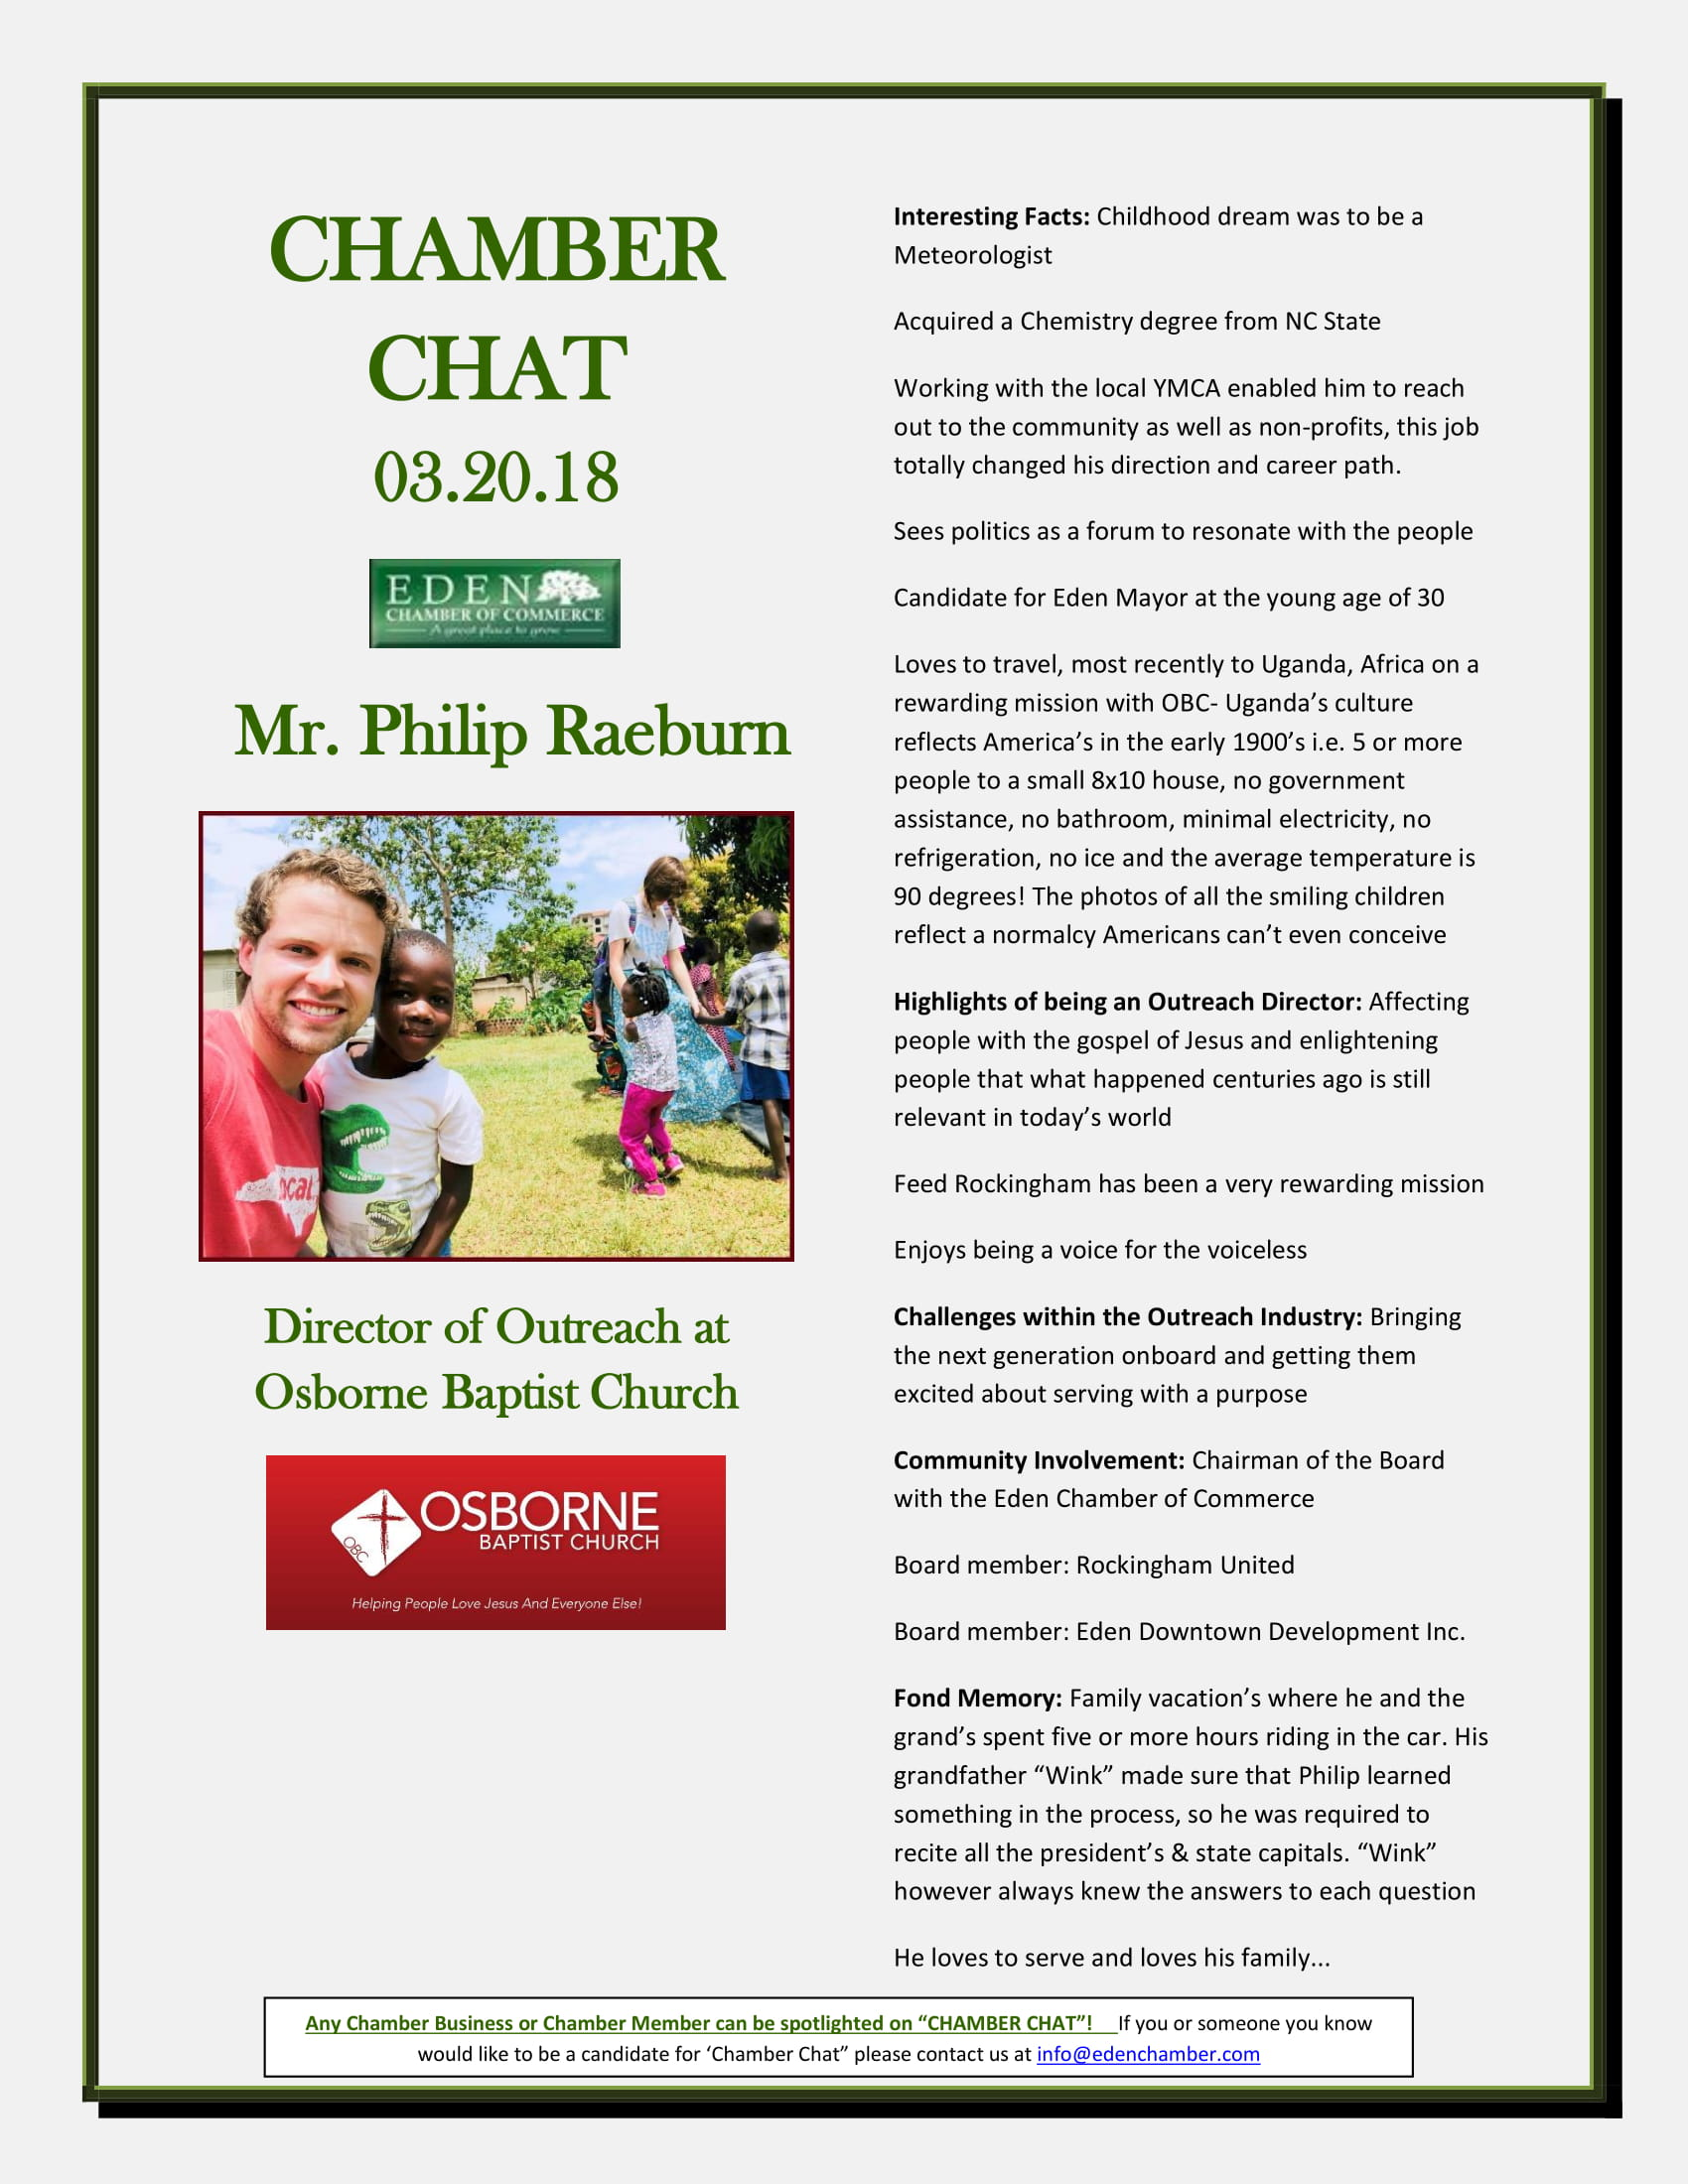 CHAMBER-CHAT-Philip-Raeburn-03.20.18-